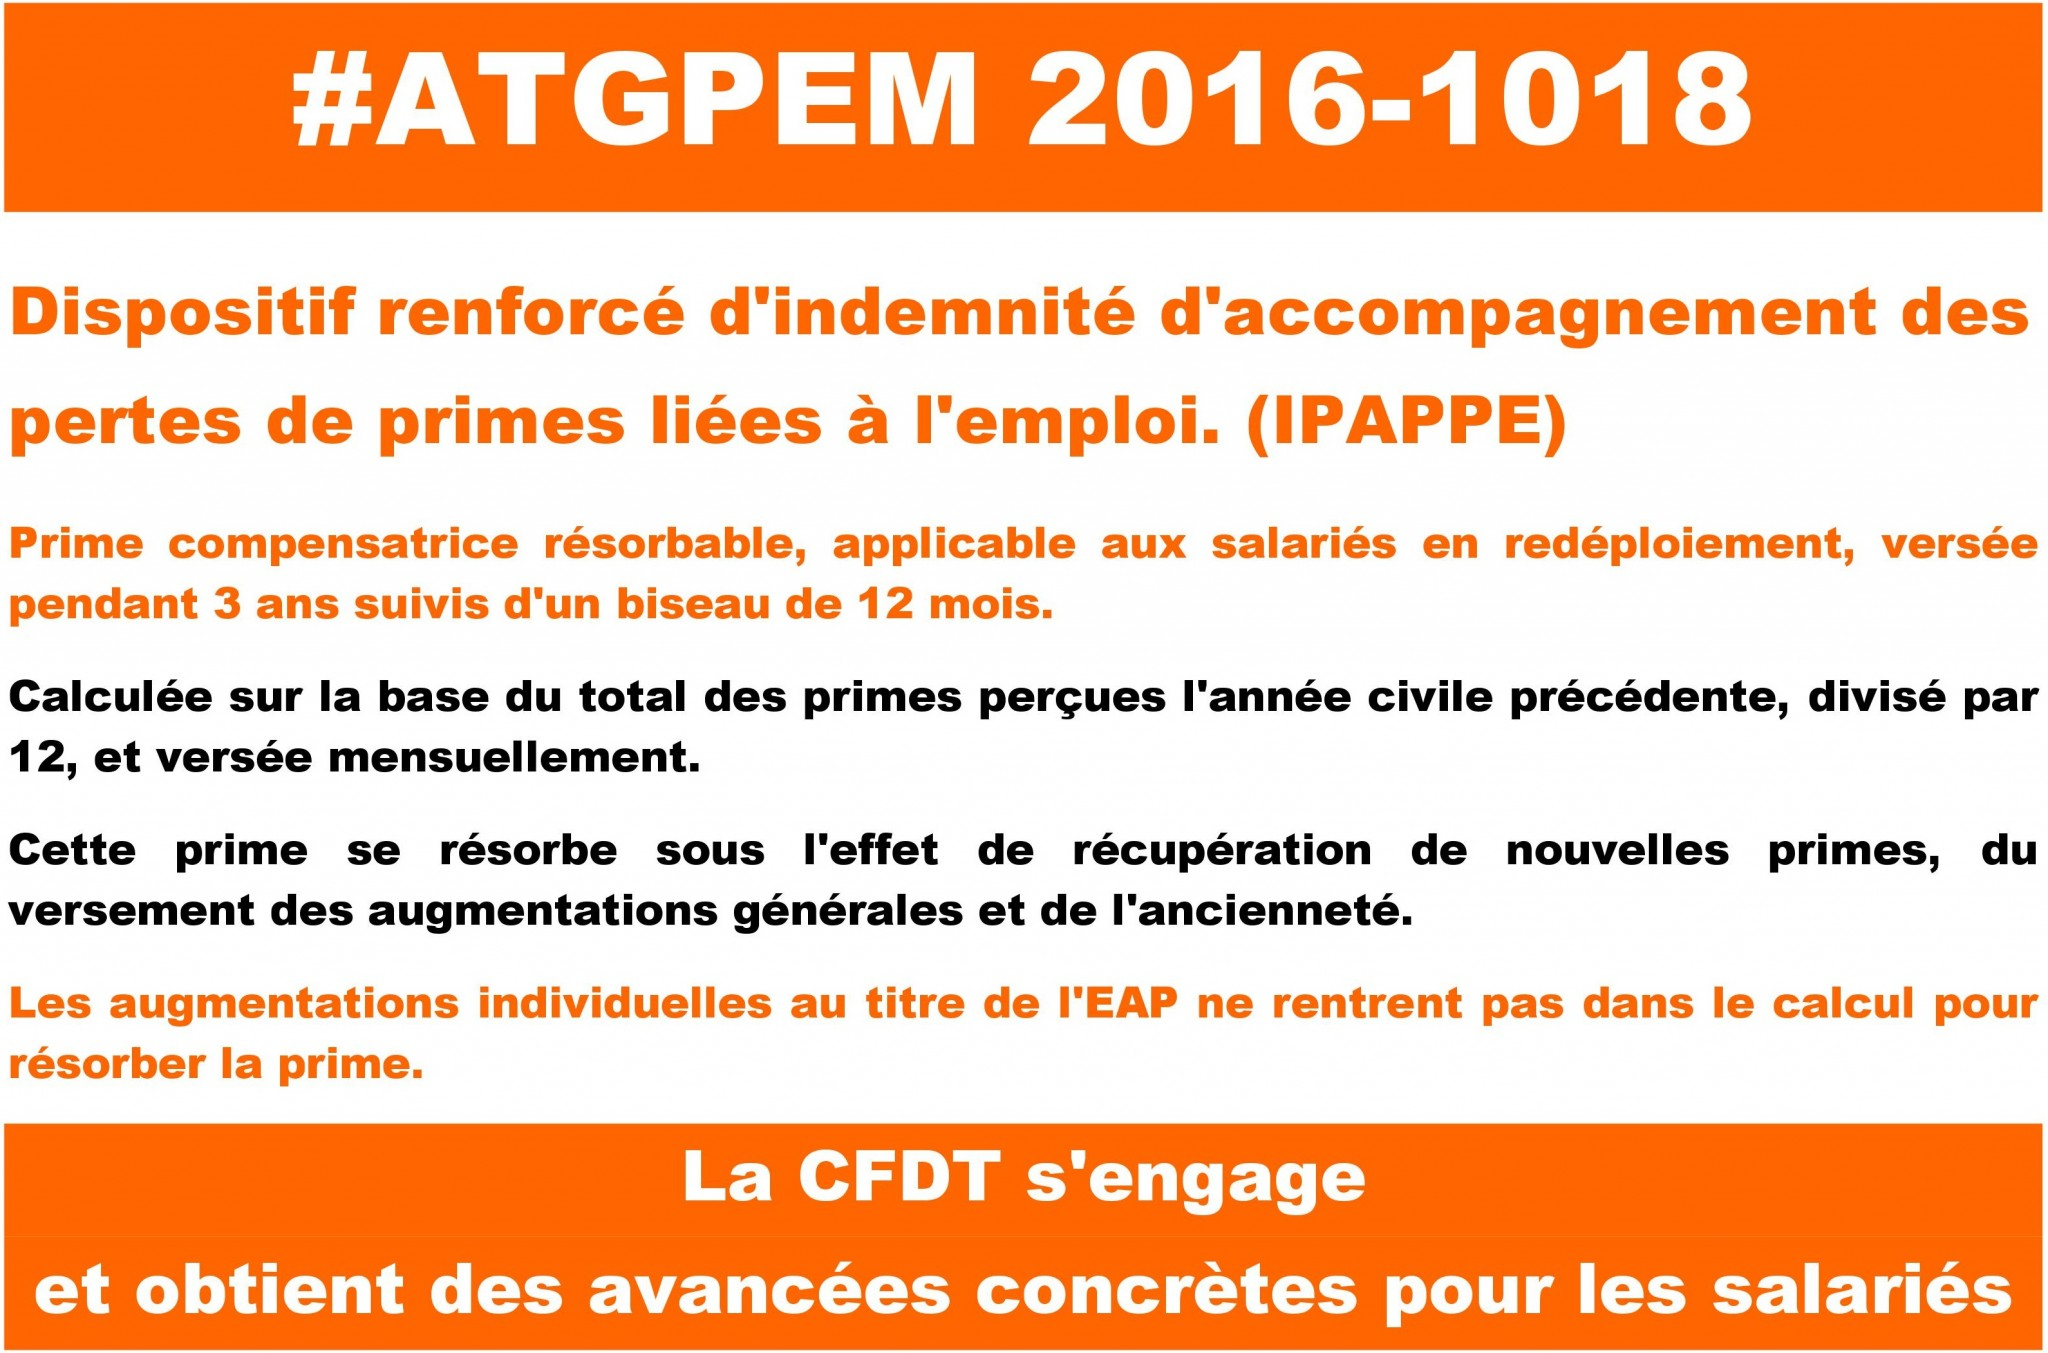 communication ATGPEM 2016 10